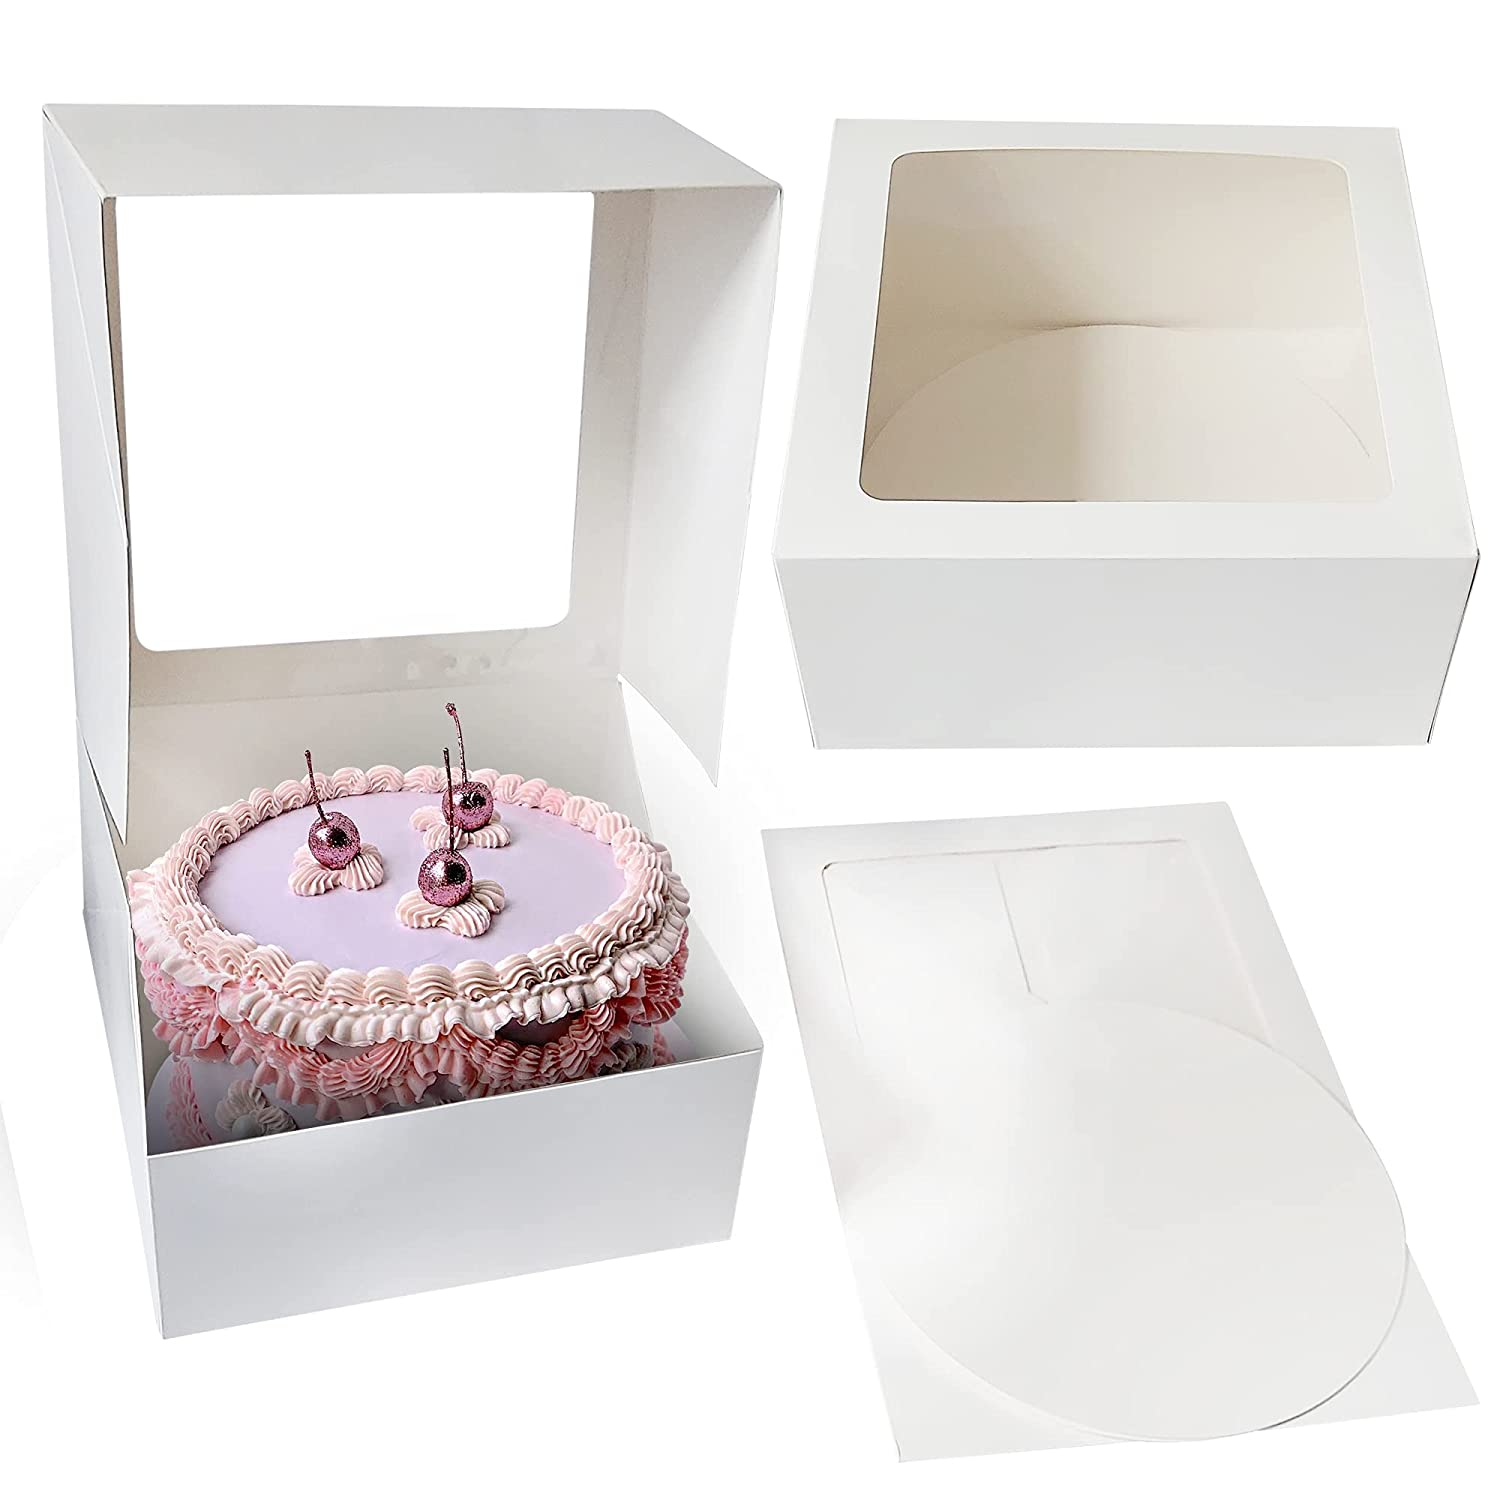 Cake Max 43% OFF Boxes Combo Set of 10 White - Inches P San Diego Mall Bakery 10x10x5